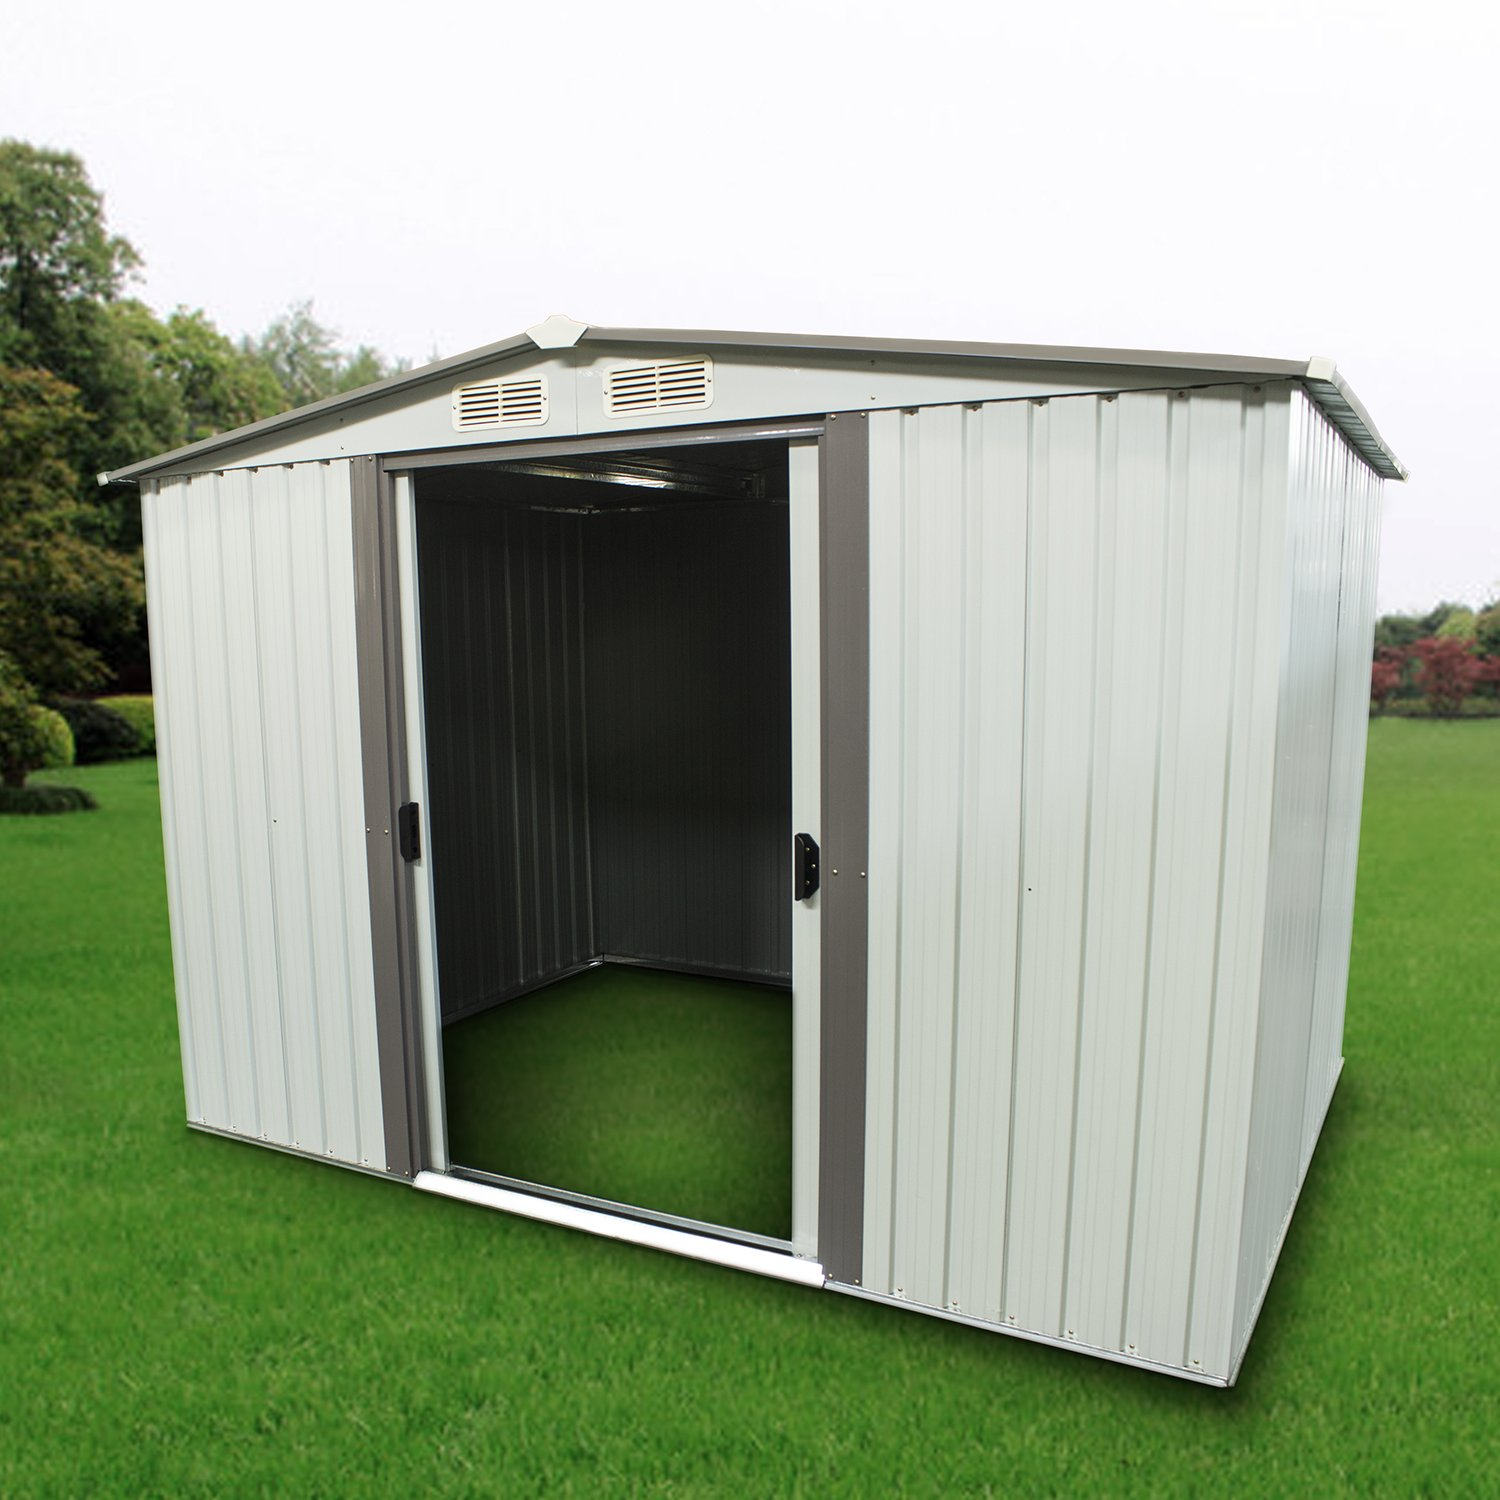 store outdoor horizontal sheds hayneedle shed ft out it cfm product midi cu master keter storage